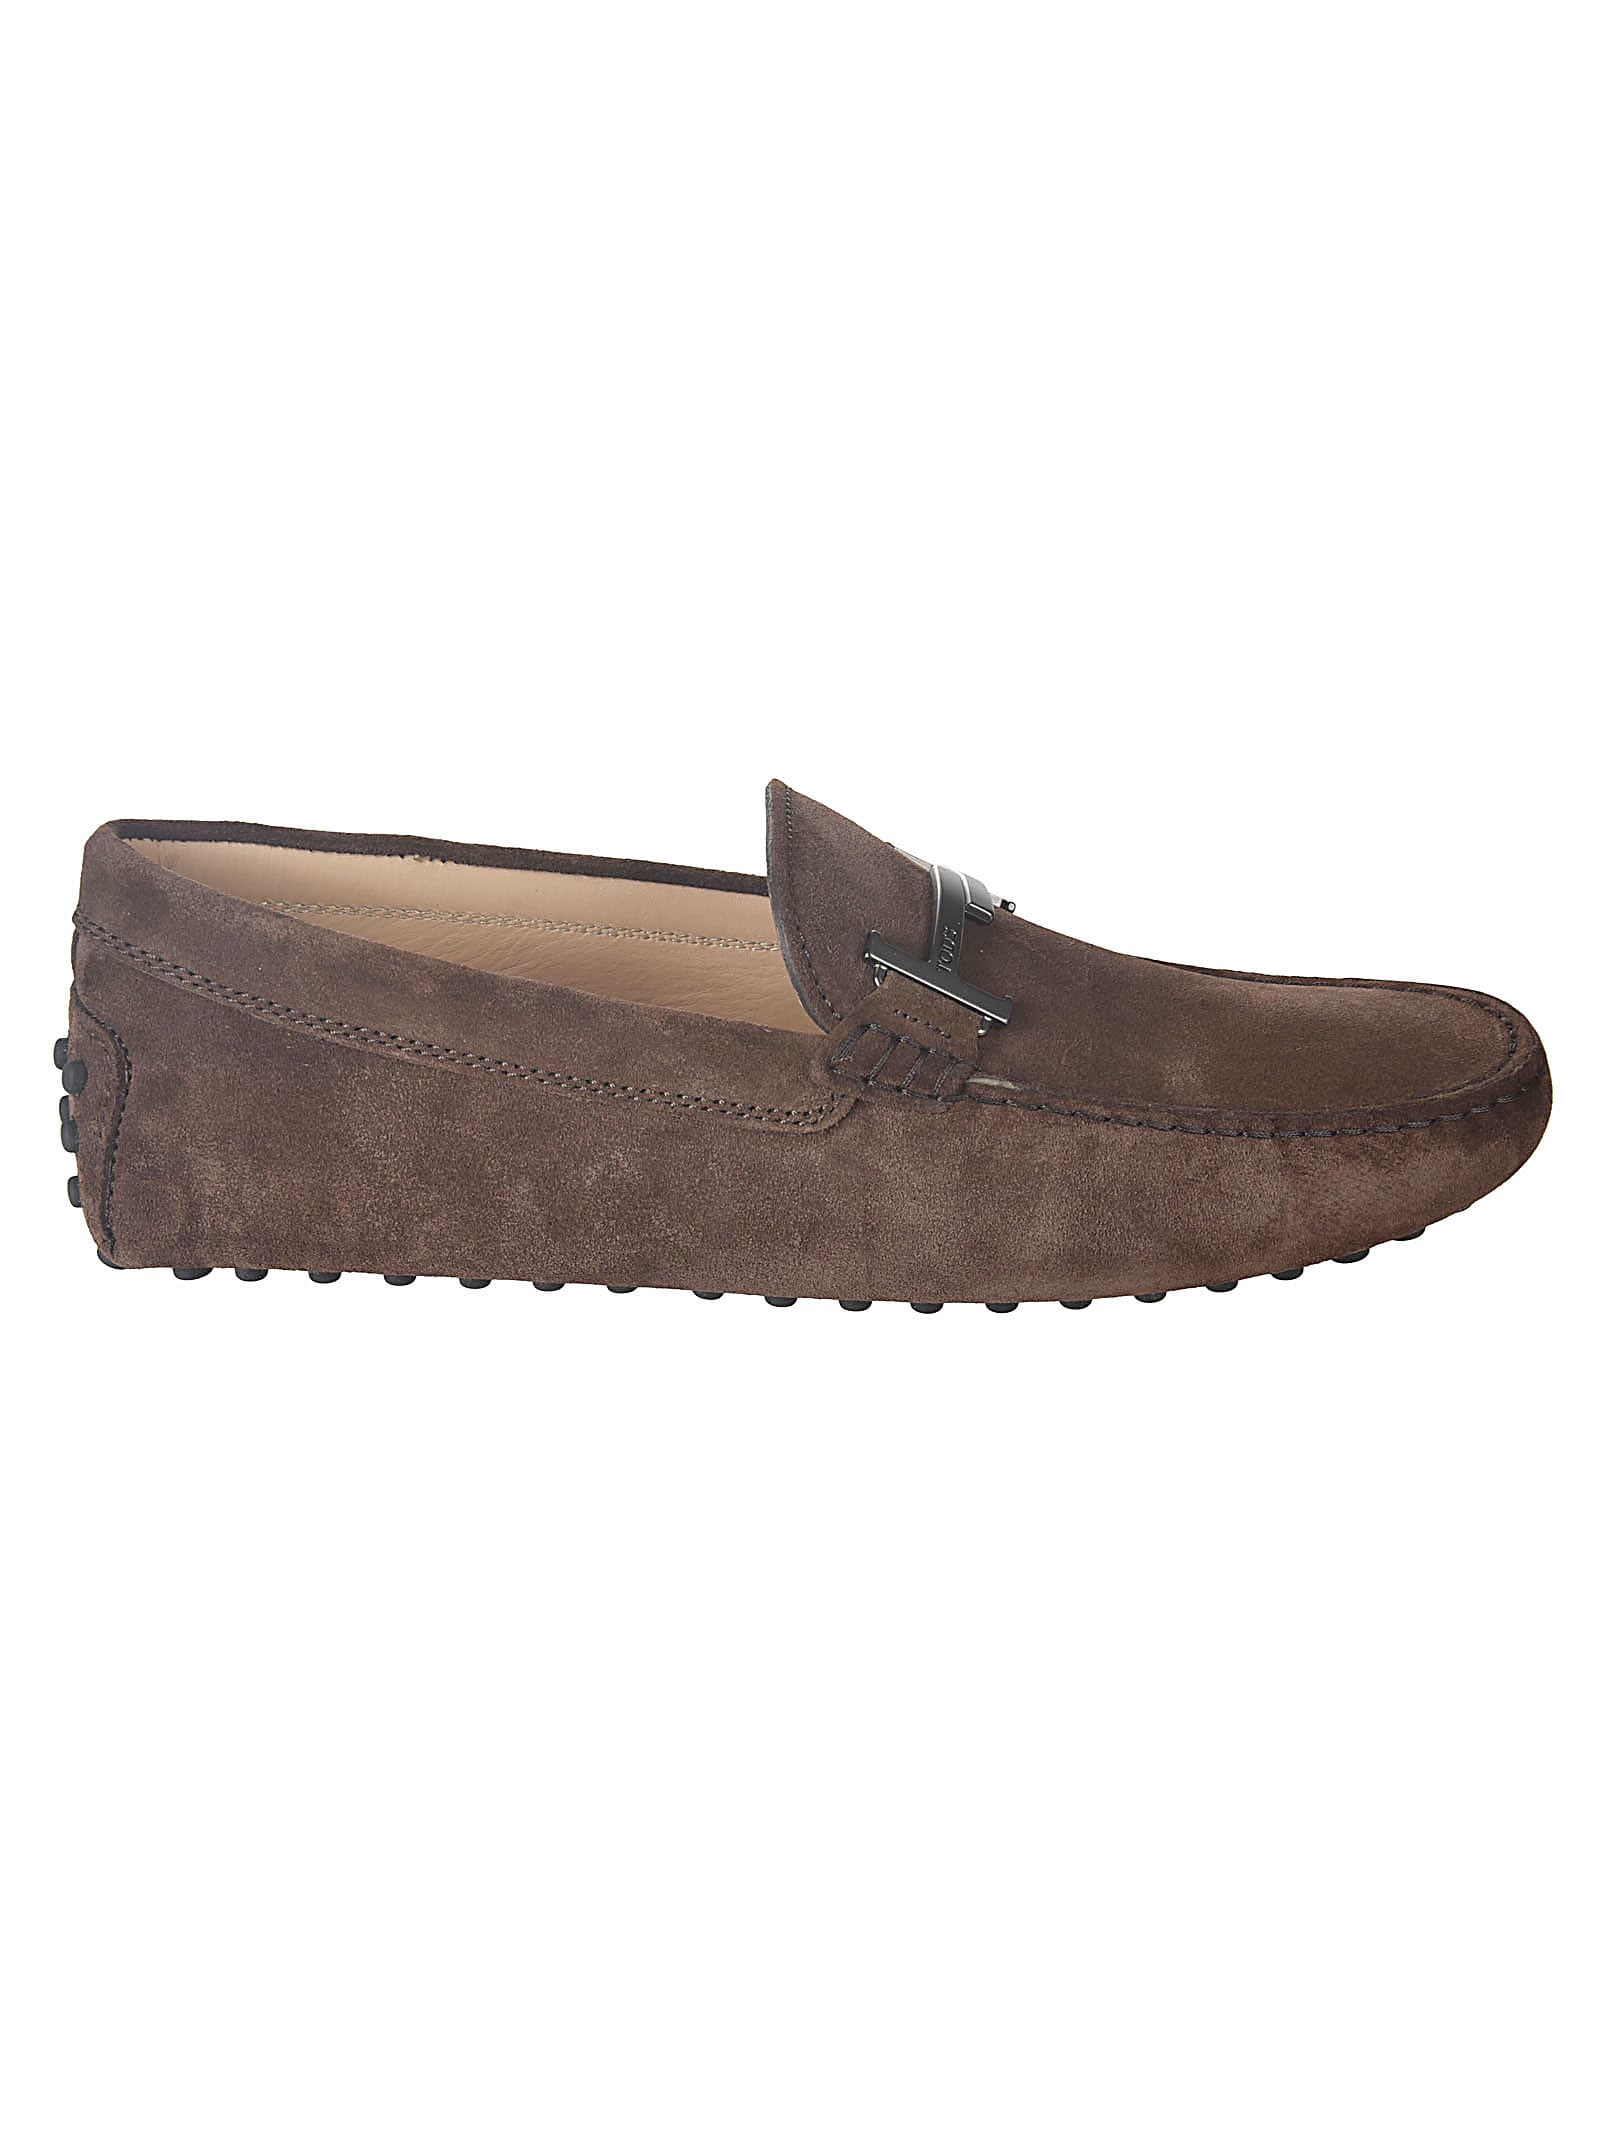 Tods Double-t Plaque Loafers